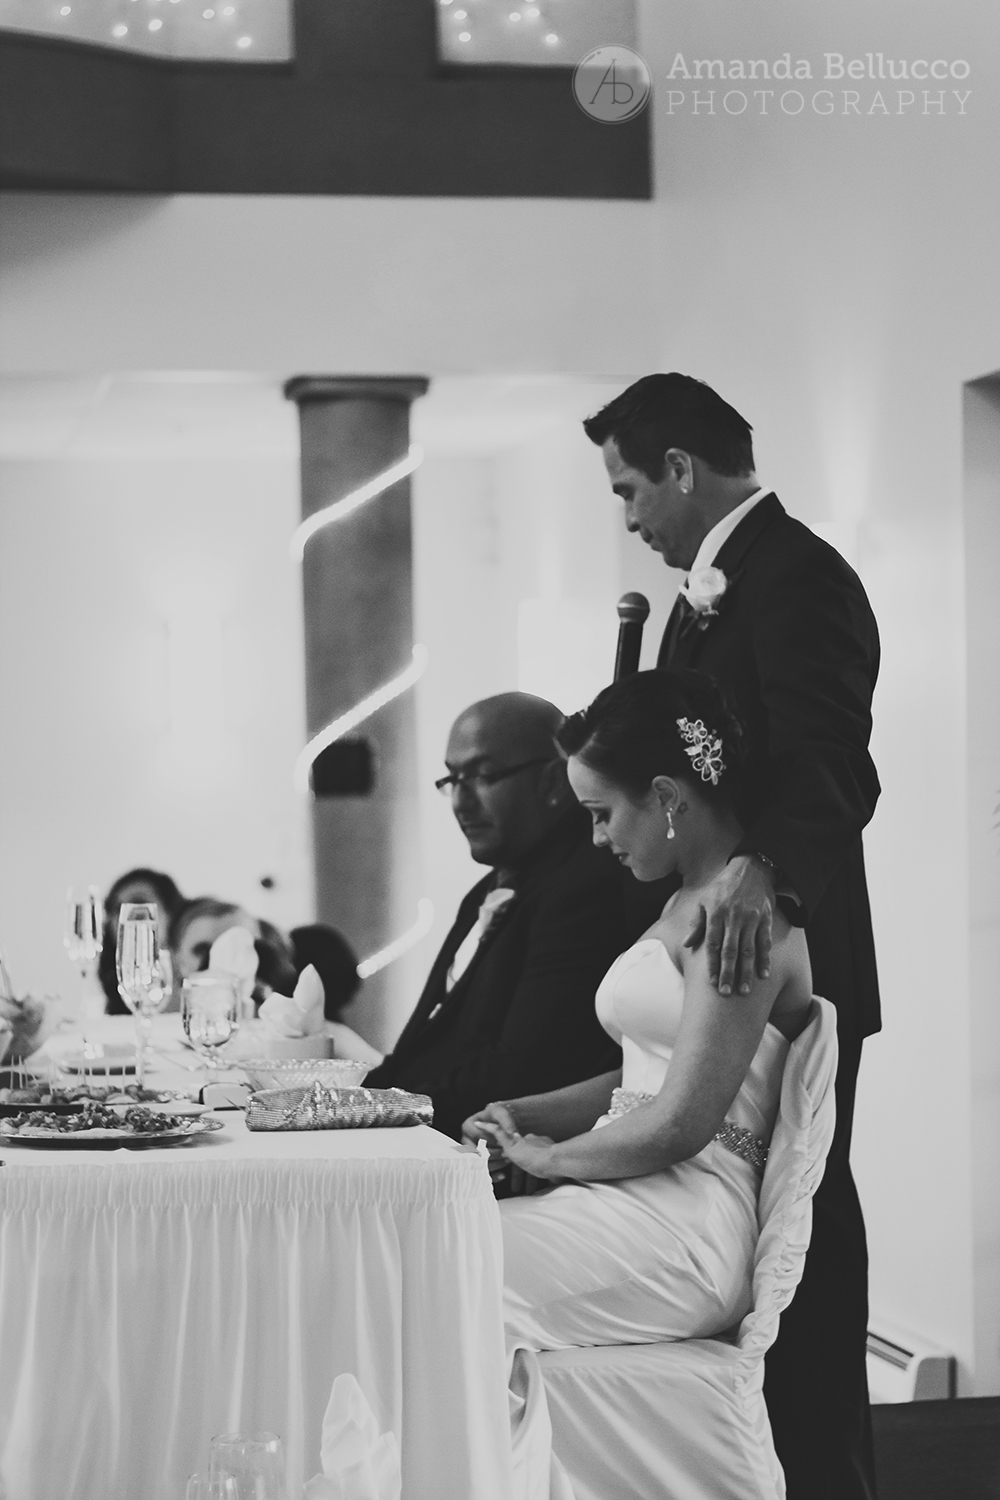 The bride and groom receive a toast during their reception at the Italian American Community Center.